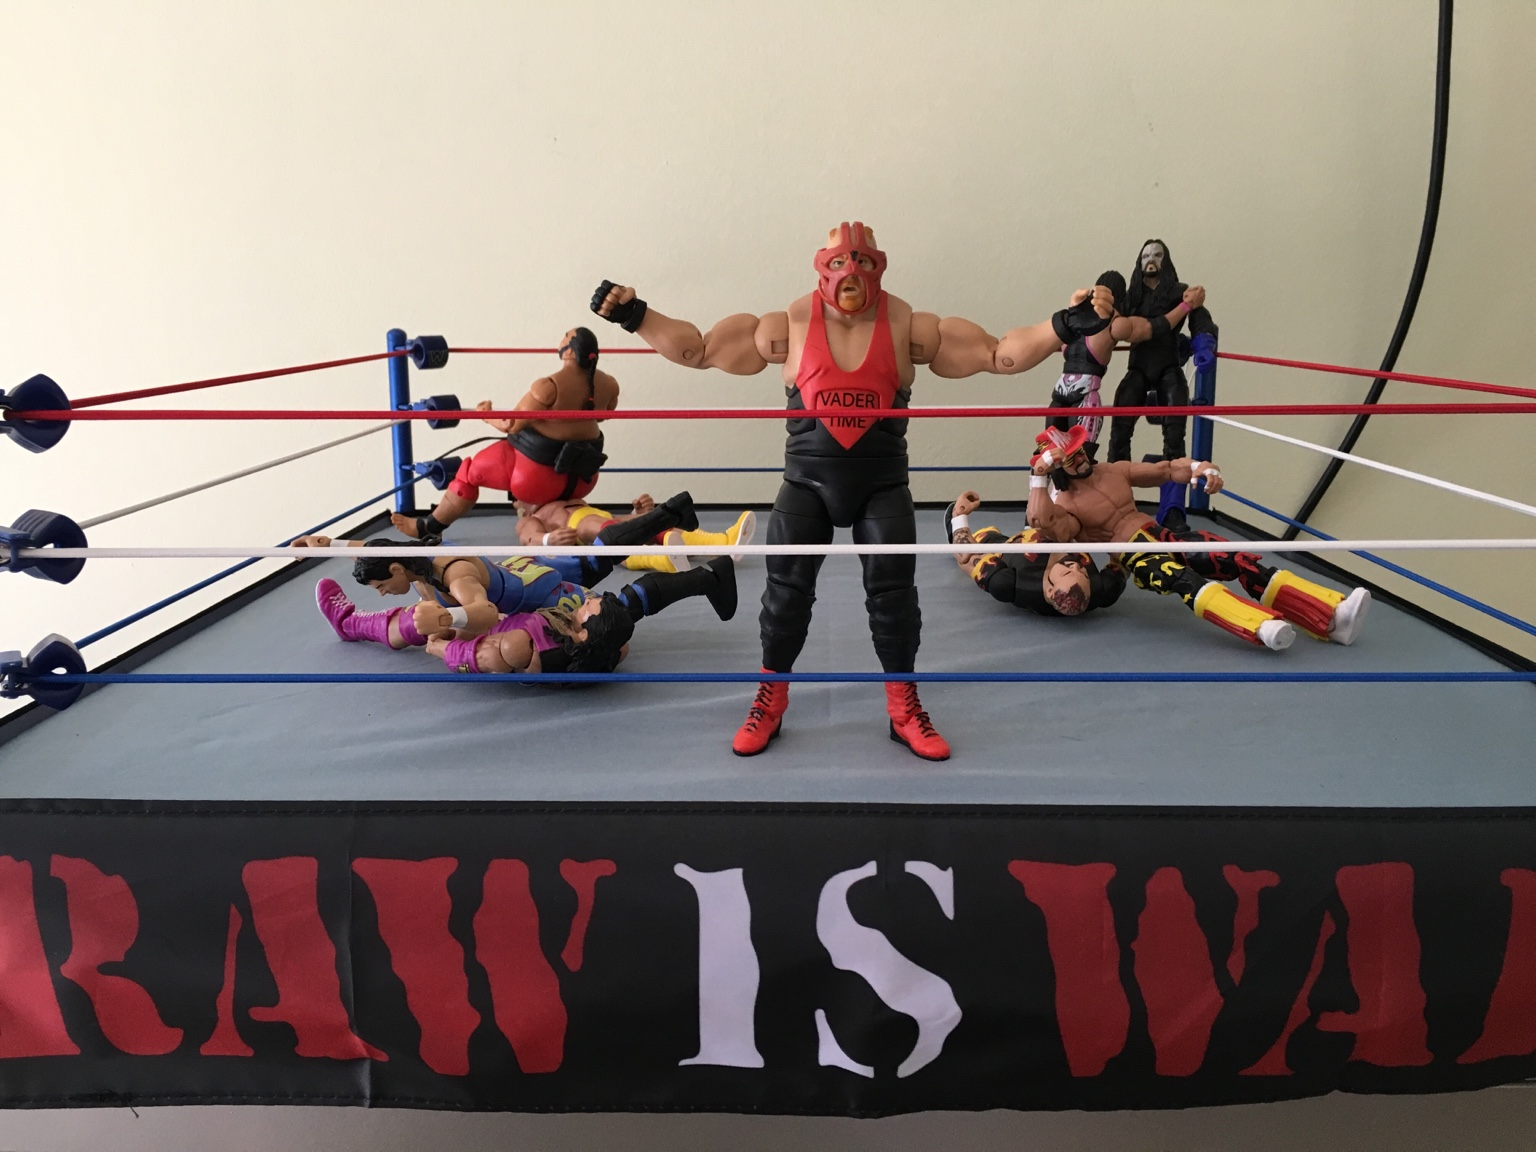 Nwo Ring Skirt Apron Raw Is War Ring Skirt Are Cool